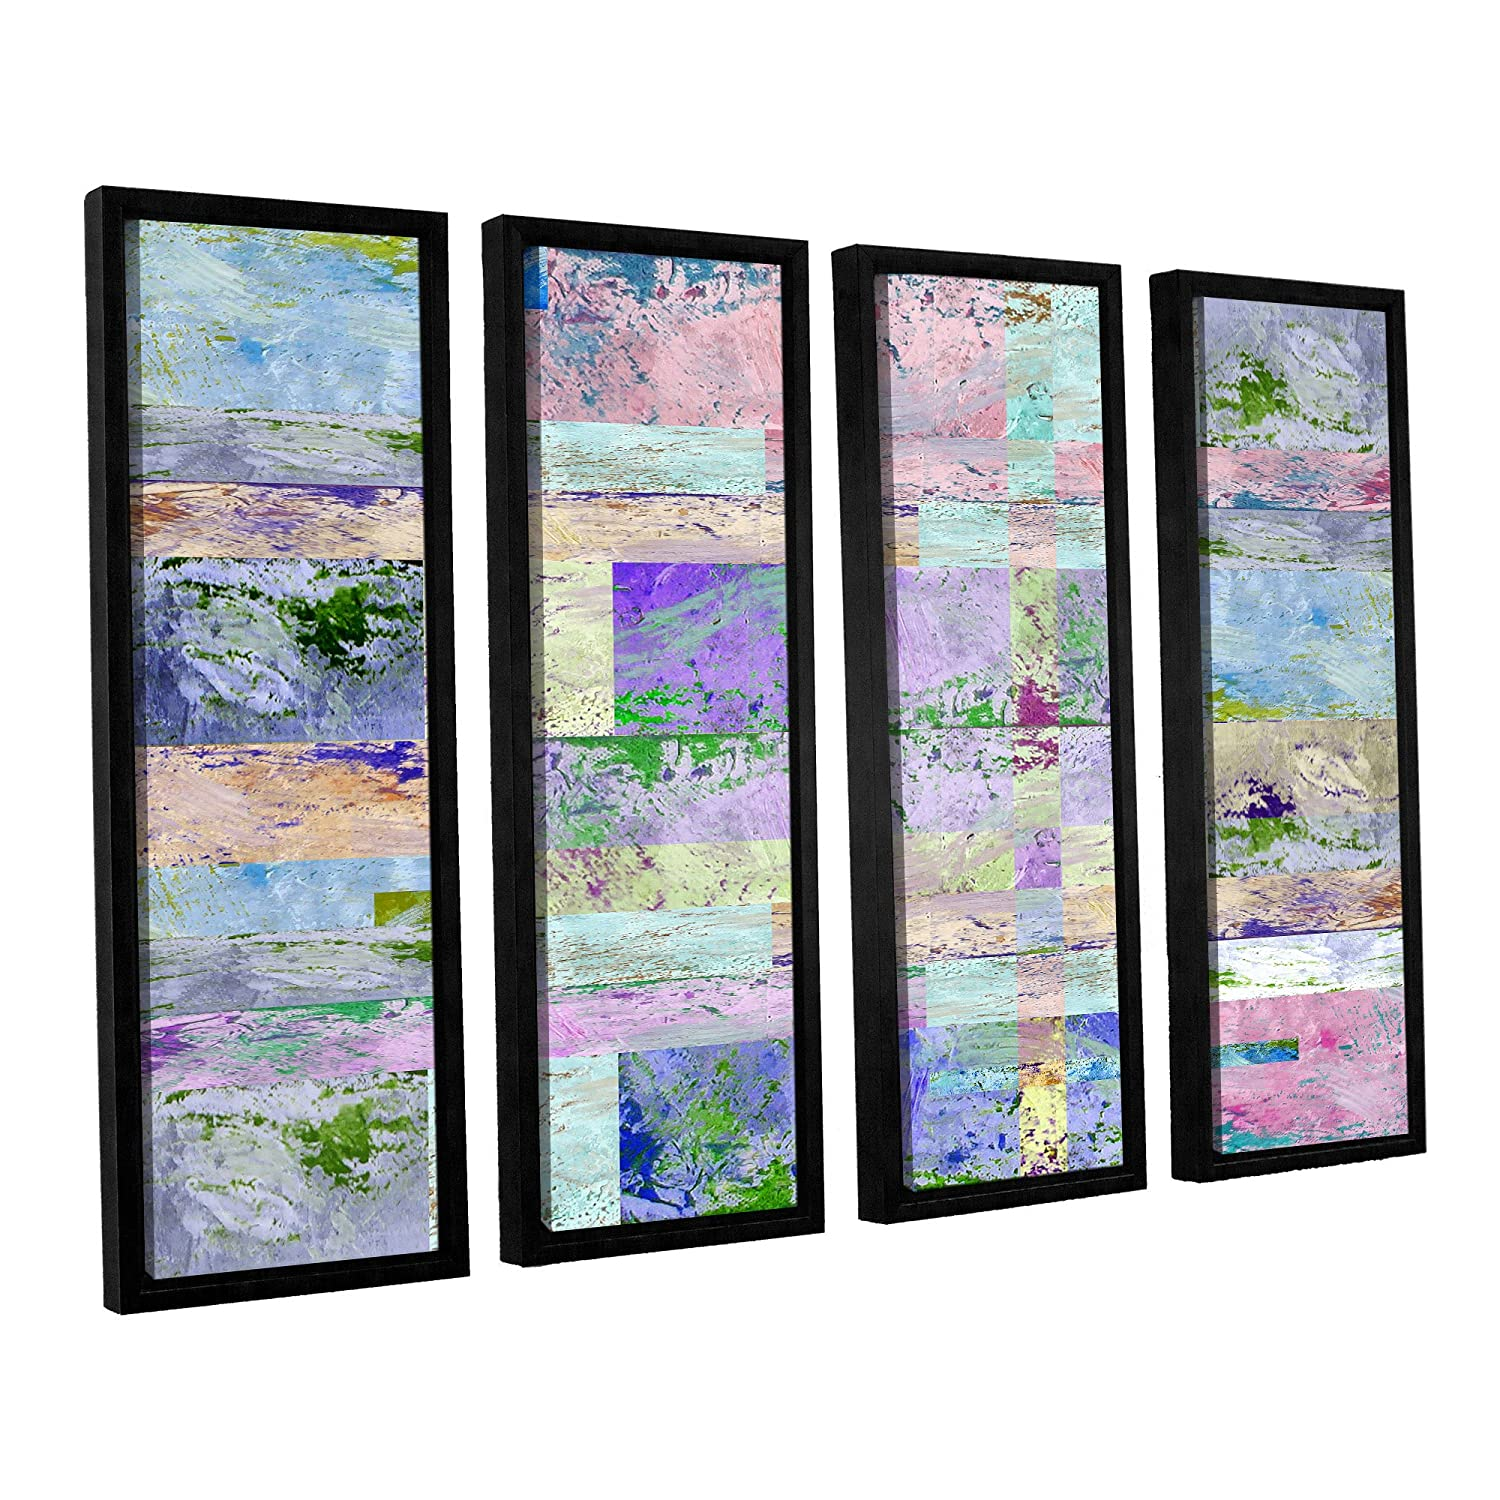 ArtWall 4 Piece Greg Simanson's Abstract I Floater Framed Canvas Set, 36 x 48